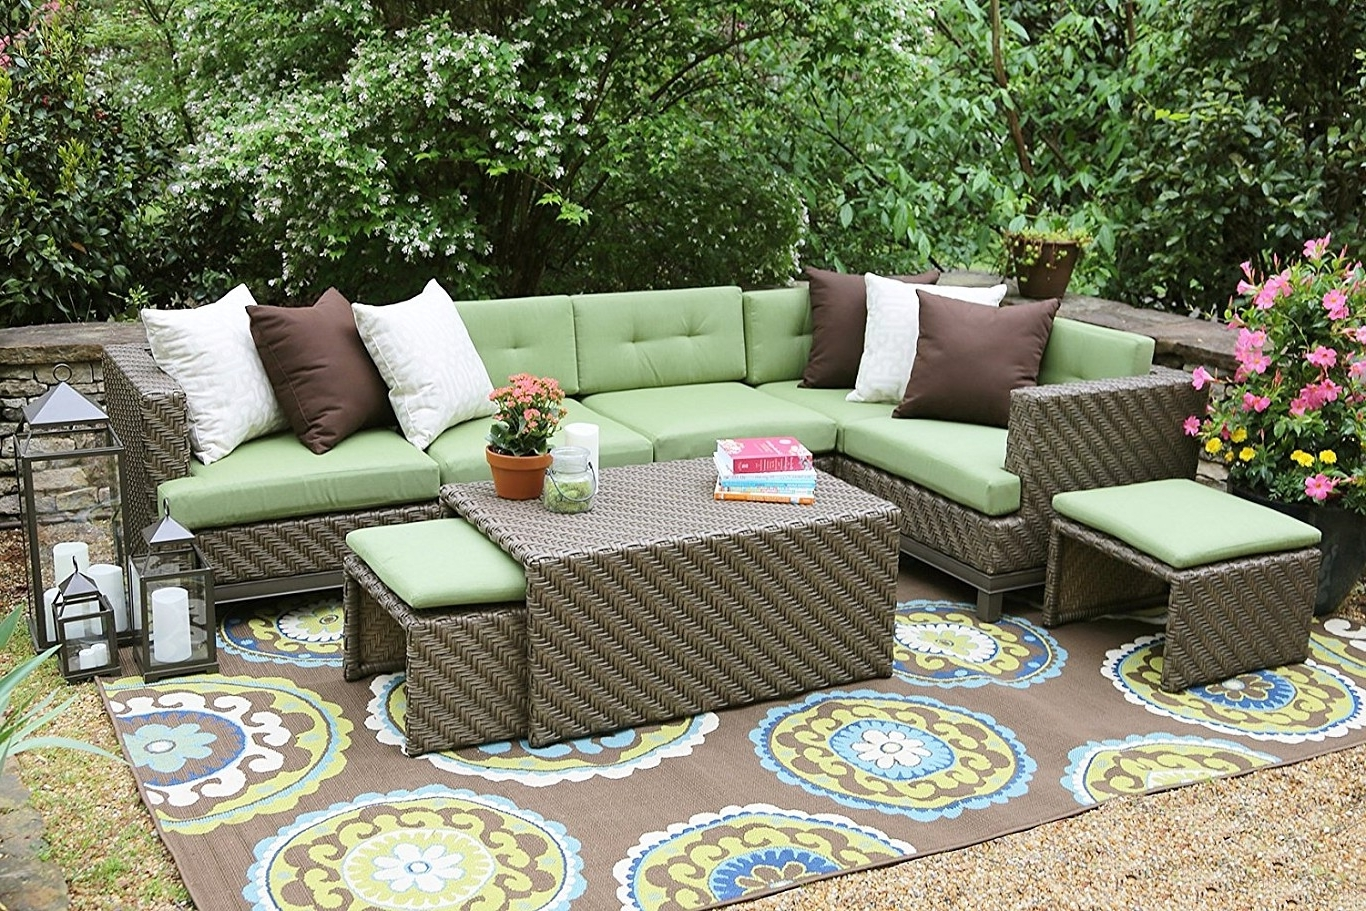 Most Recent Sunbrella Sling Patio Furniture Sunbrella Patio Furniture Lowes With Regard To Macys Outdoor Chaise Lounge Chairs (View 11 of 15)